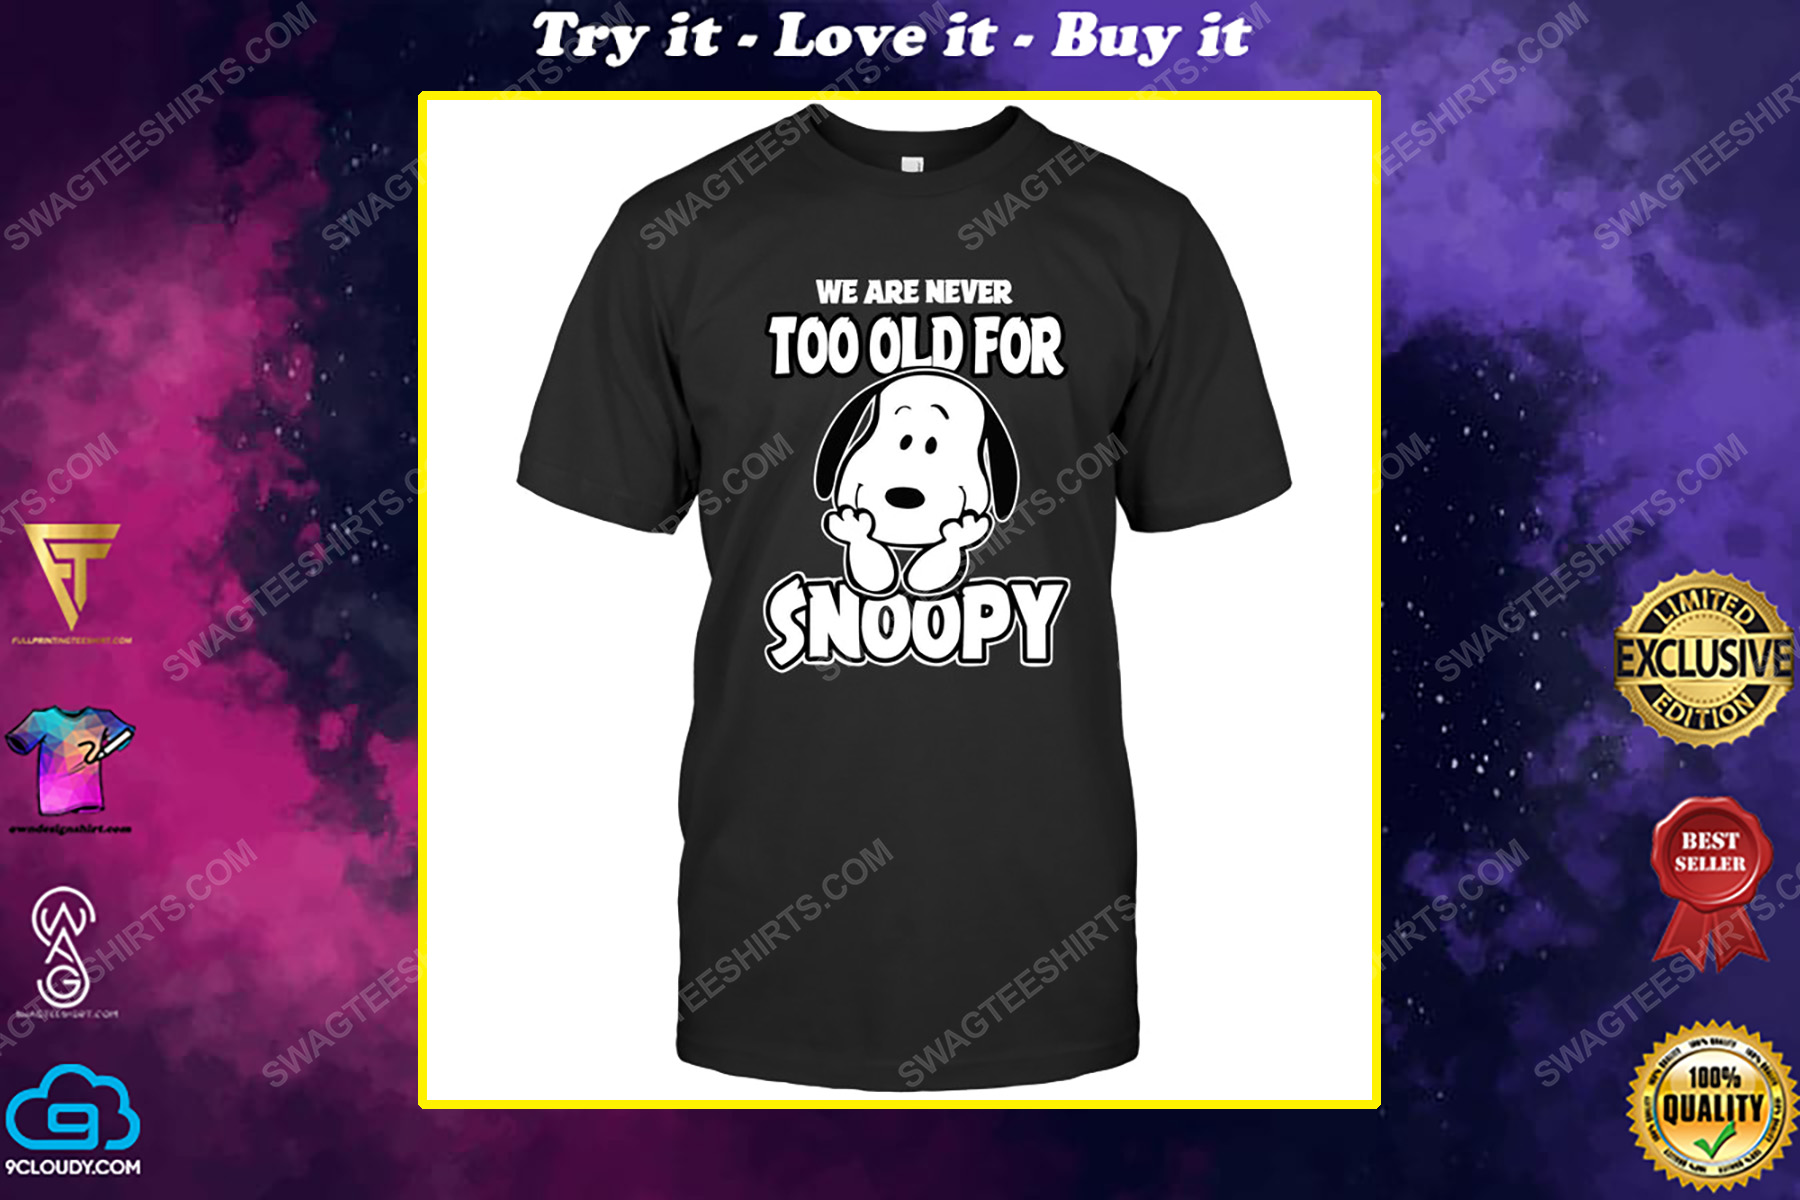 We are never too old for snoopy charlie brown shirt